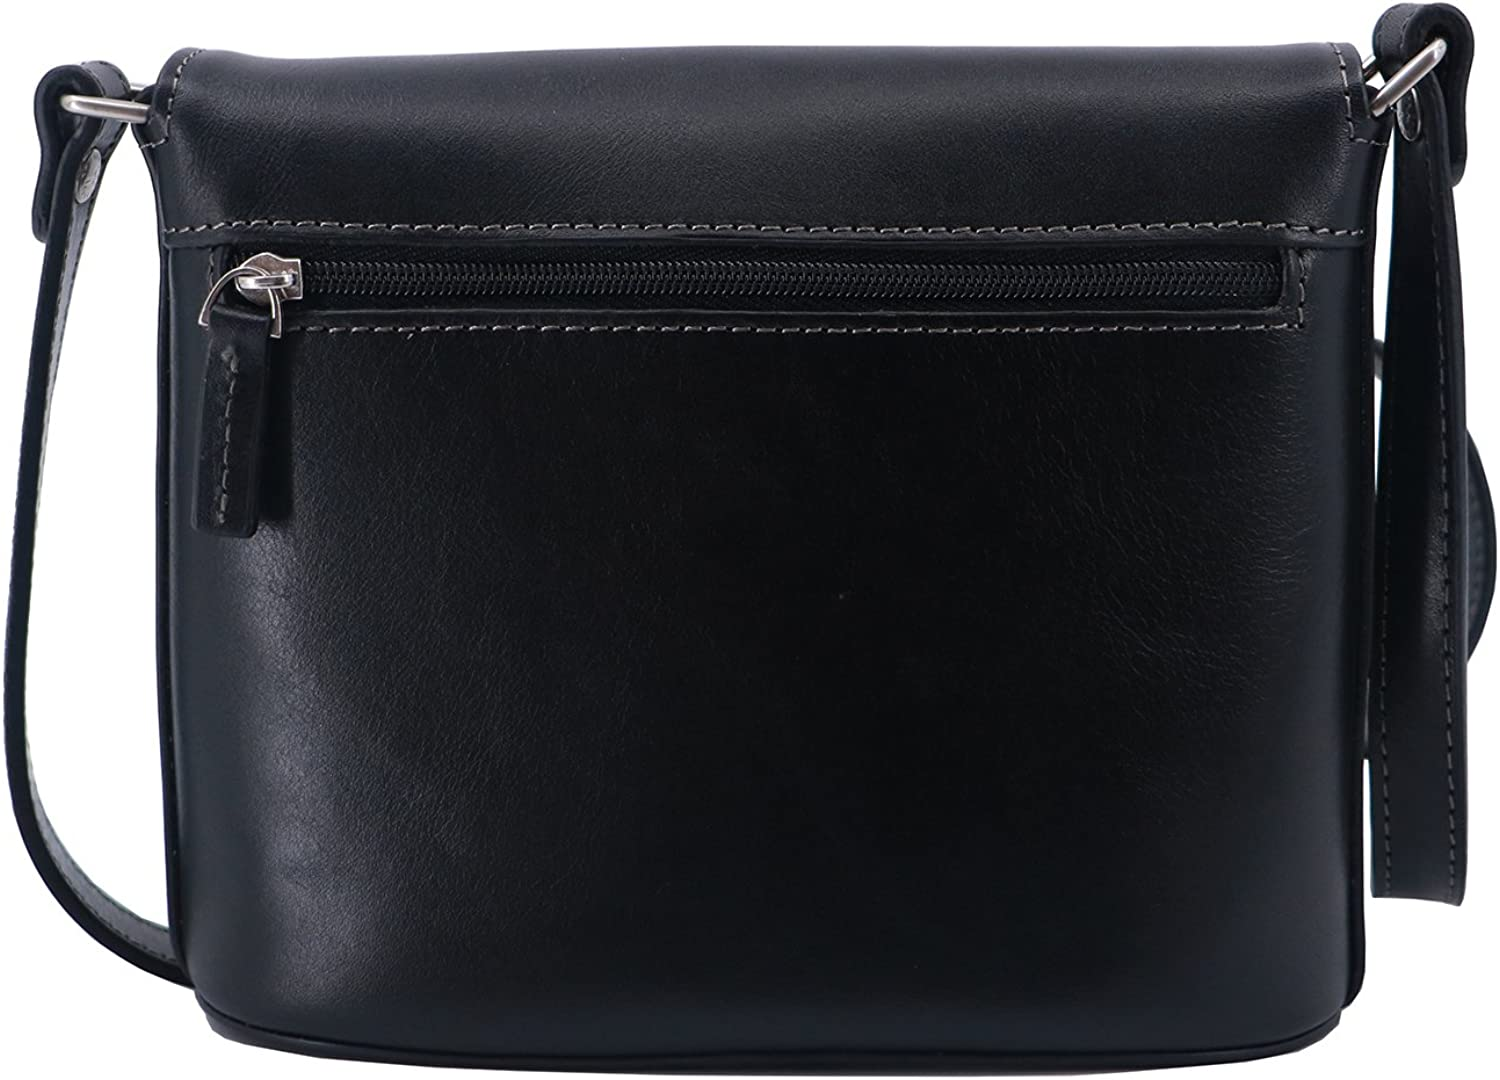 Katana small cow leather Cross Body Bag Black